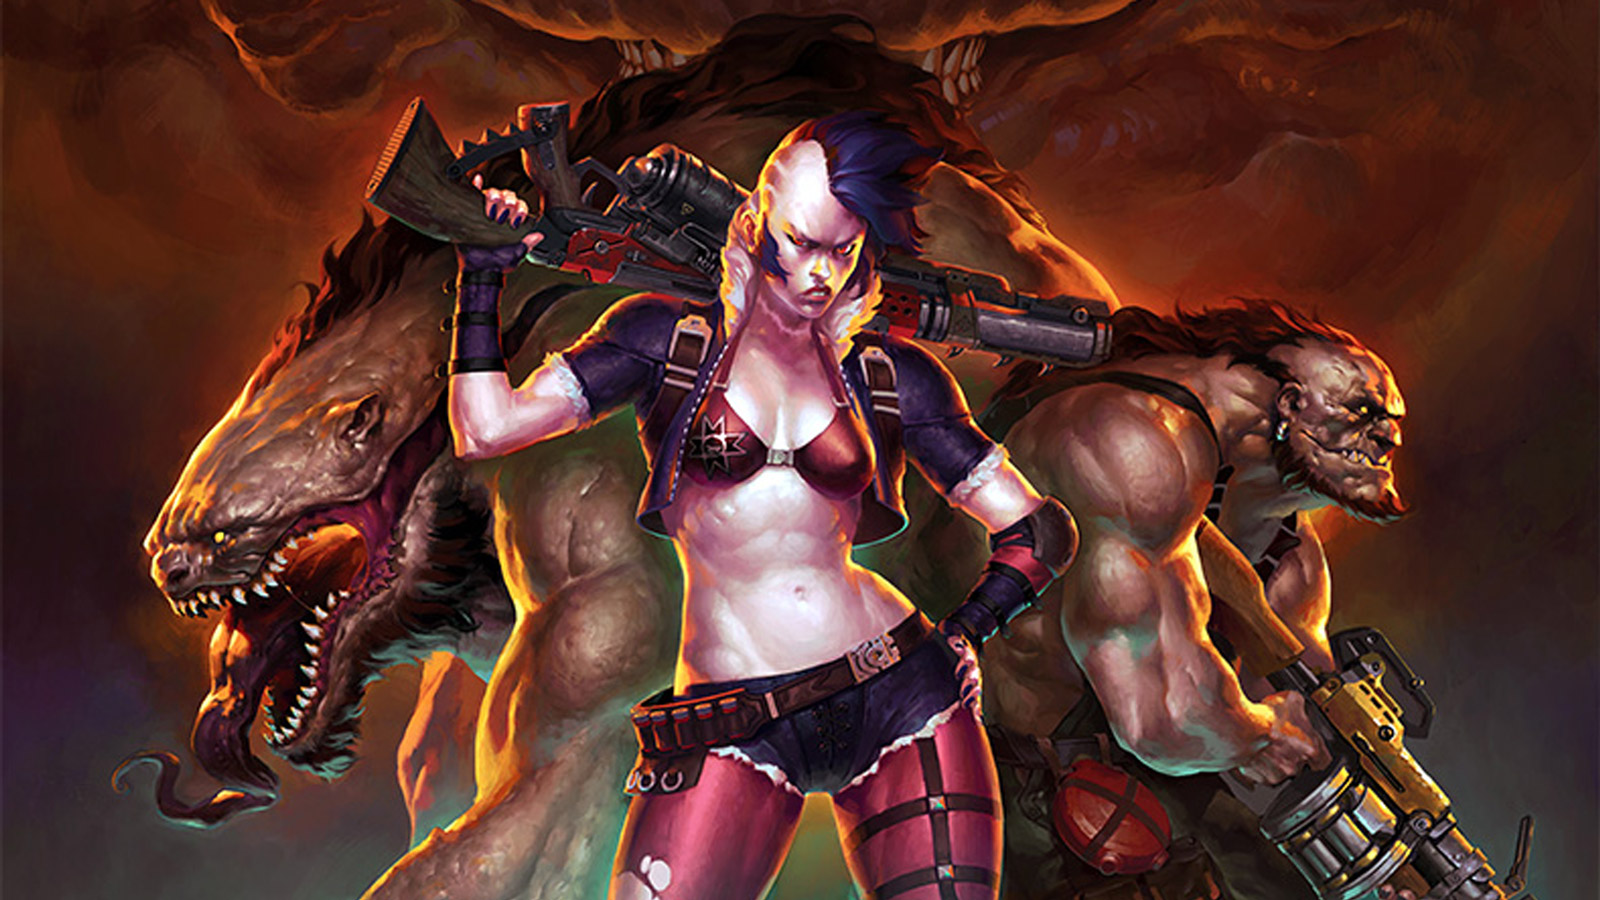 Spacelords Wallpaper in 1600x900